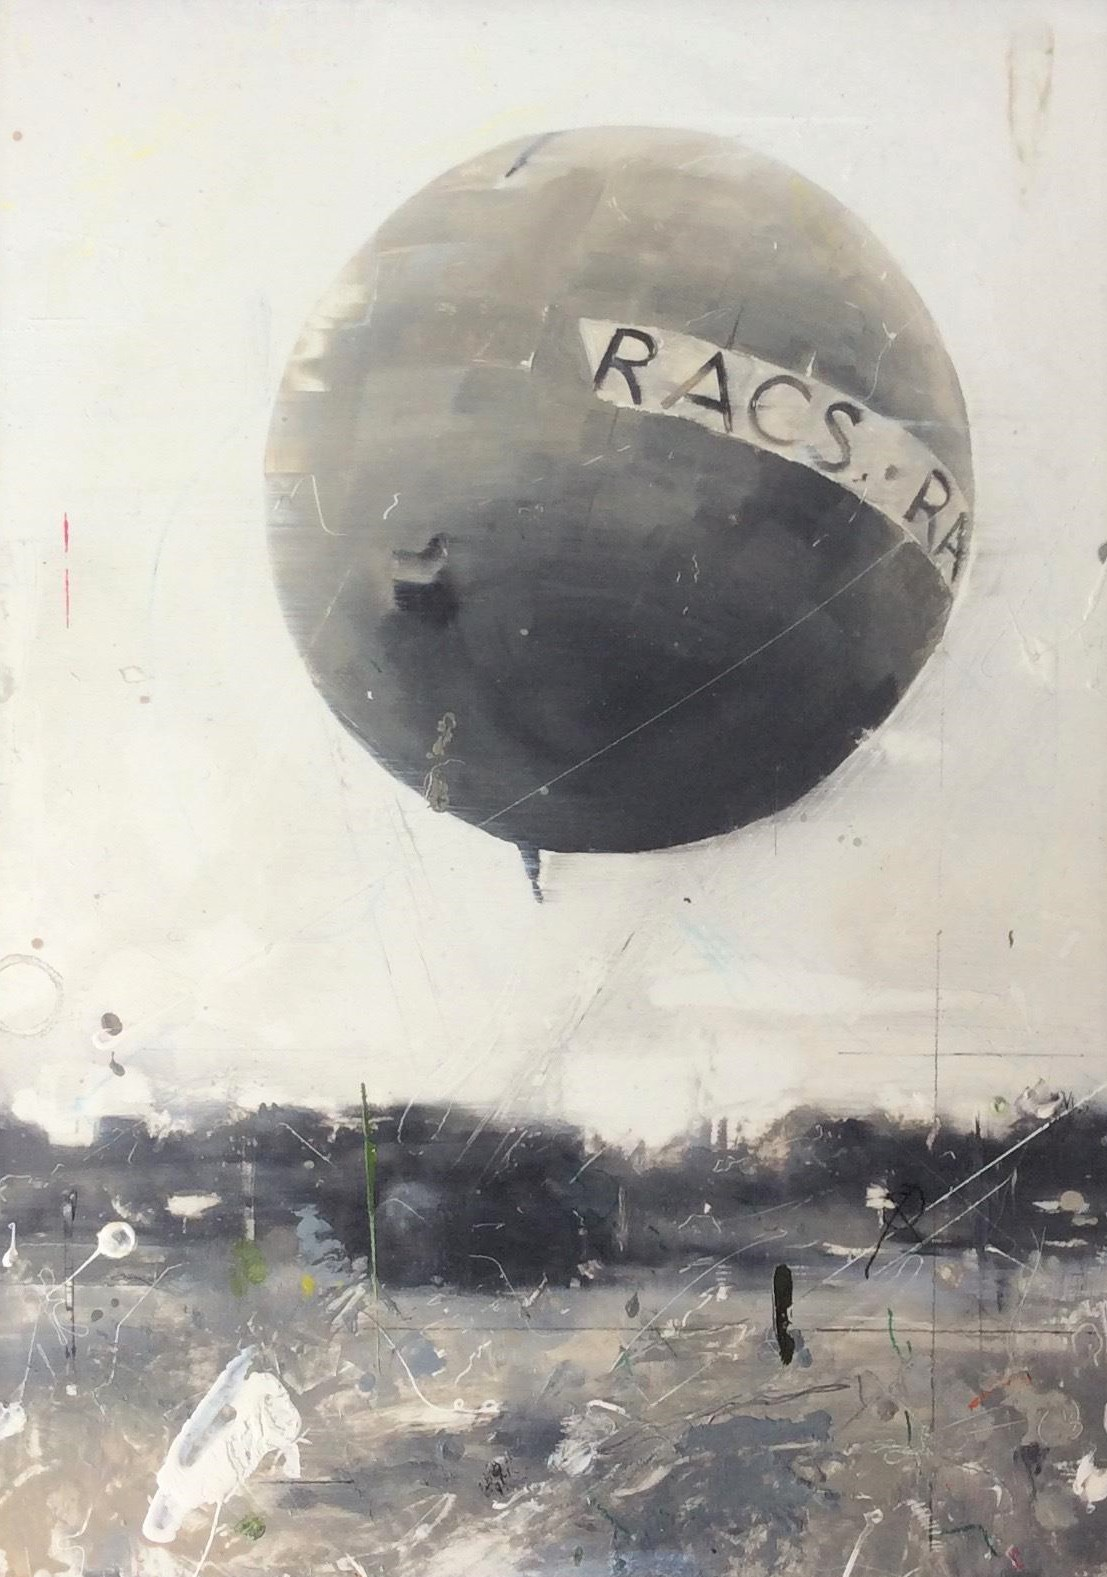 Balloon '19. Angela Bell. Jackson's Painting Prize.